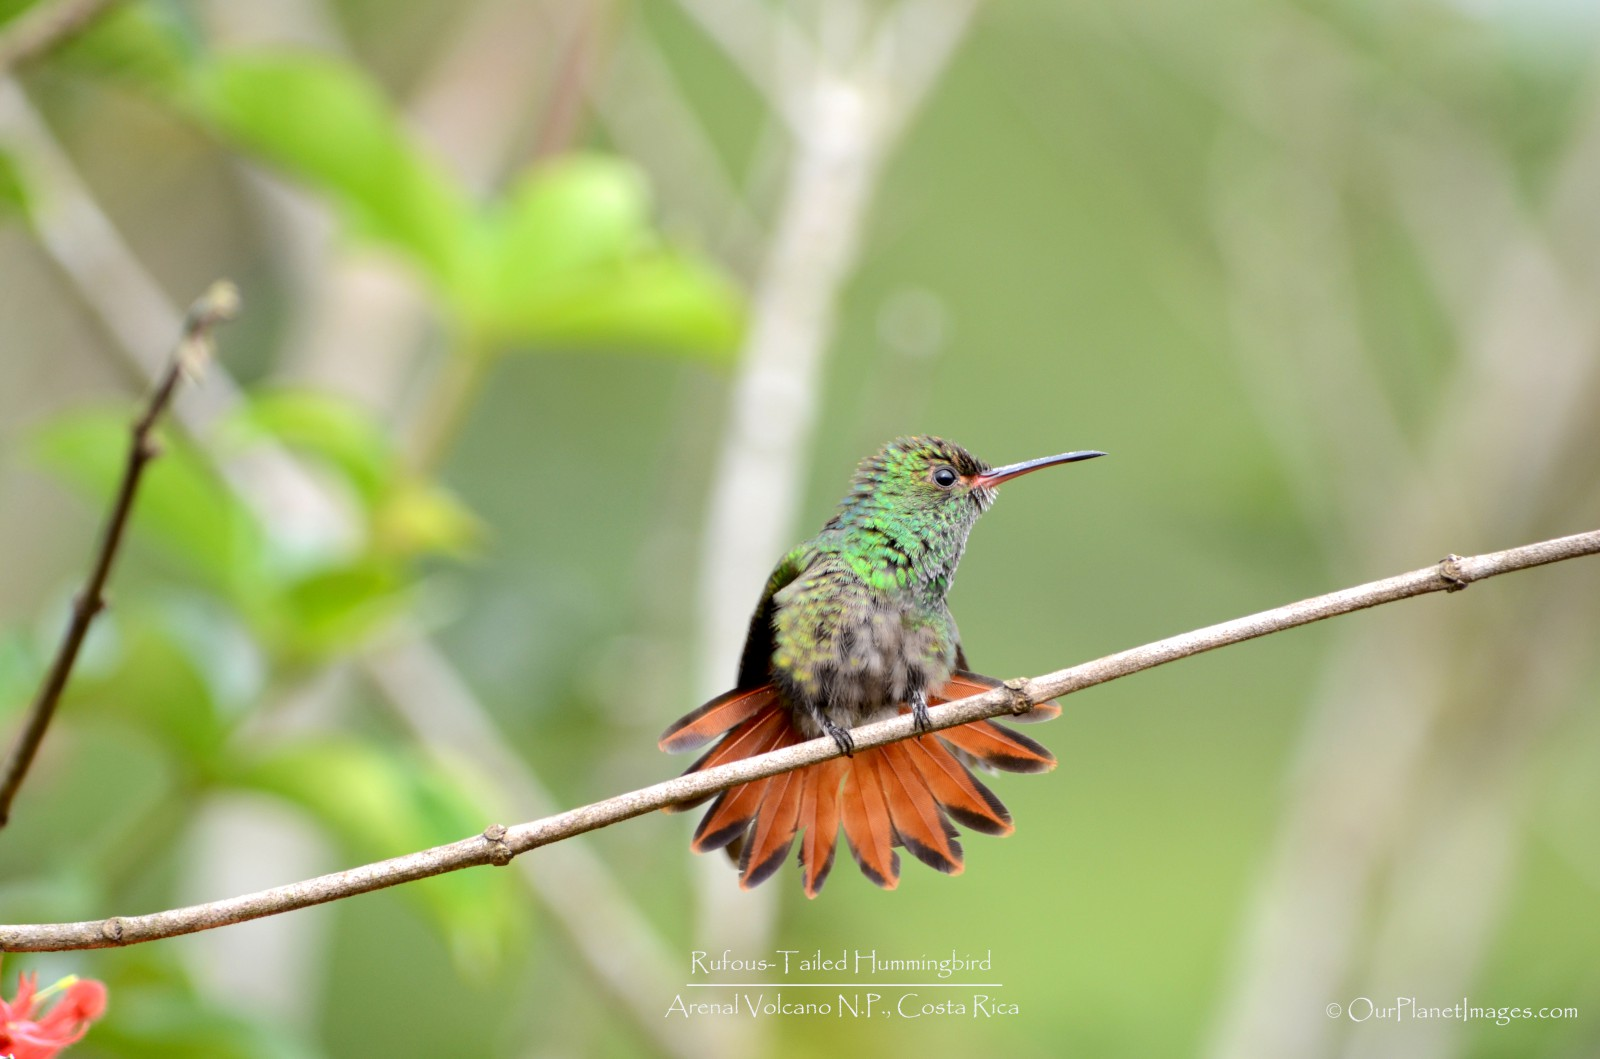 Rufous Tailed Hummingbird fanned tail